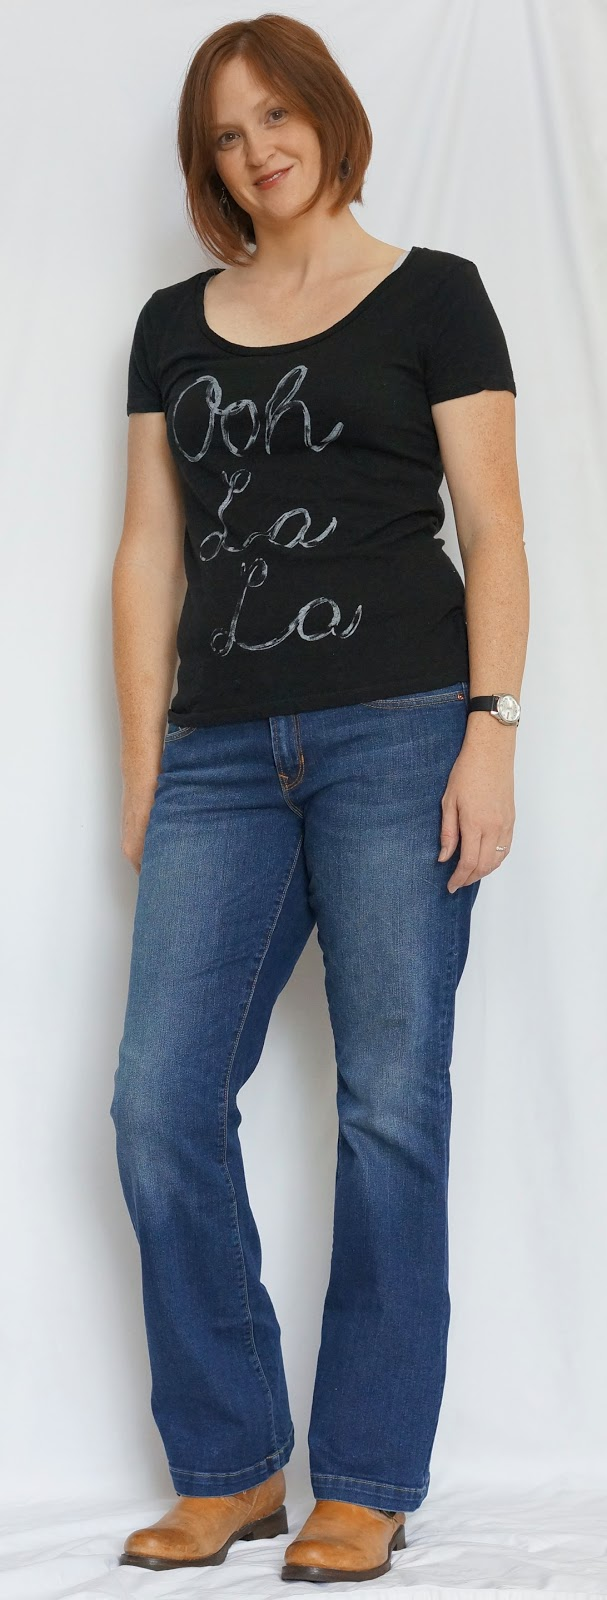 Black t shirt and jeans - Outfit 20 91 Black T Shirt Bootcut Jeans And Frye Boots